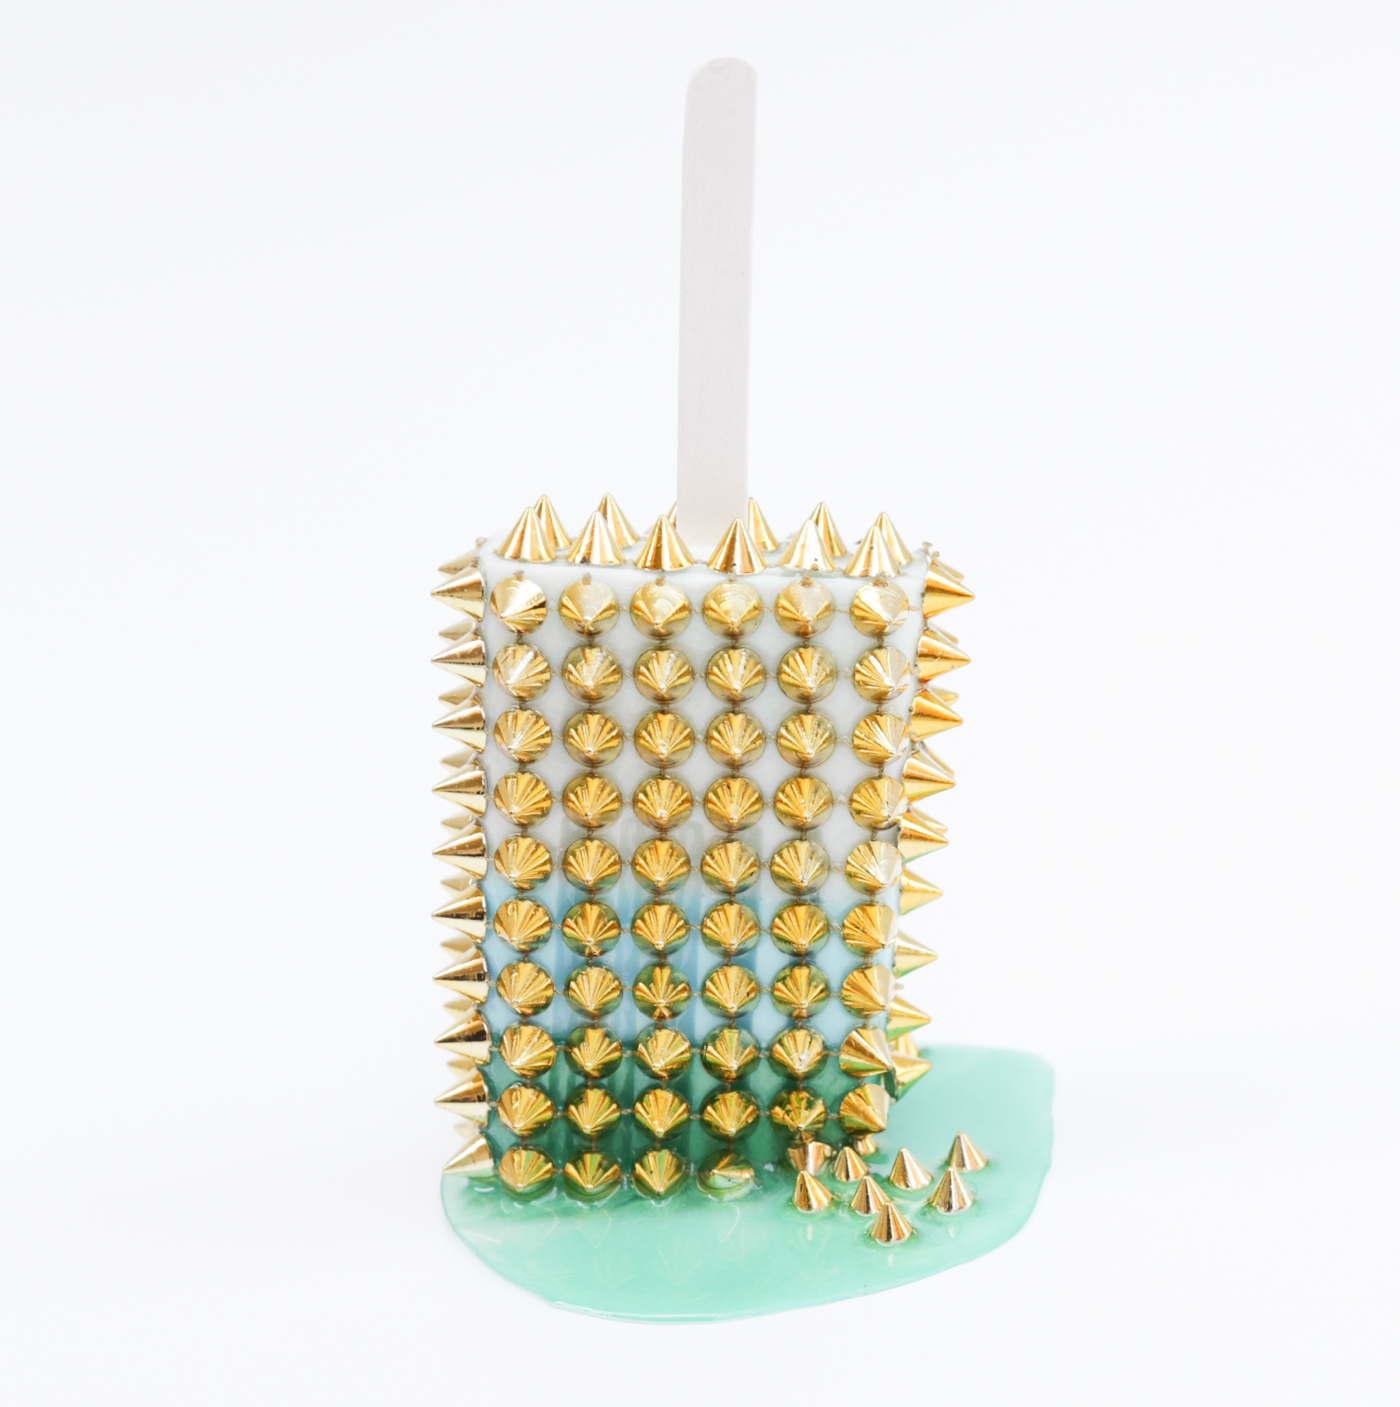 Winter Popsicle with Gold Spikes © Betsy Enzensberger